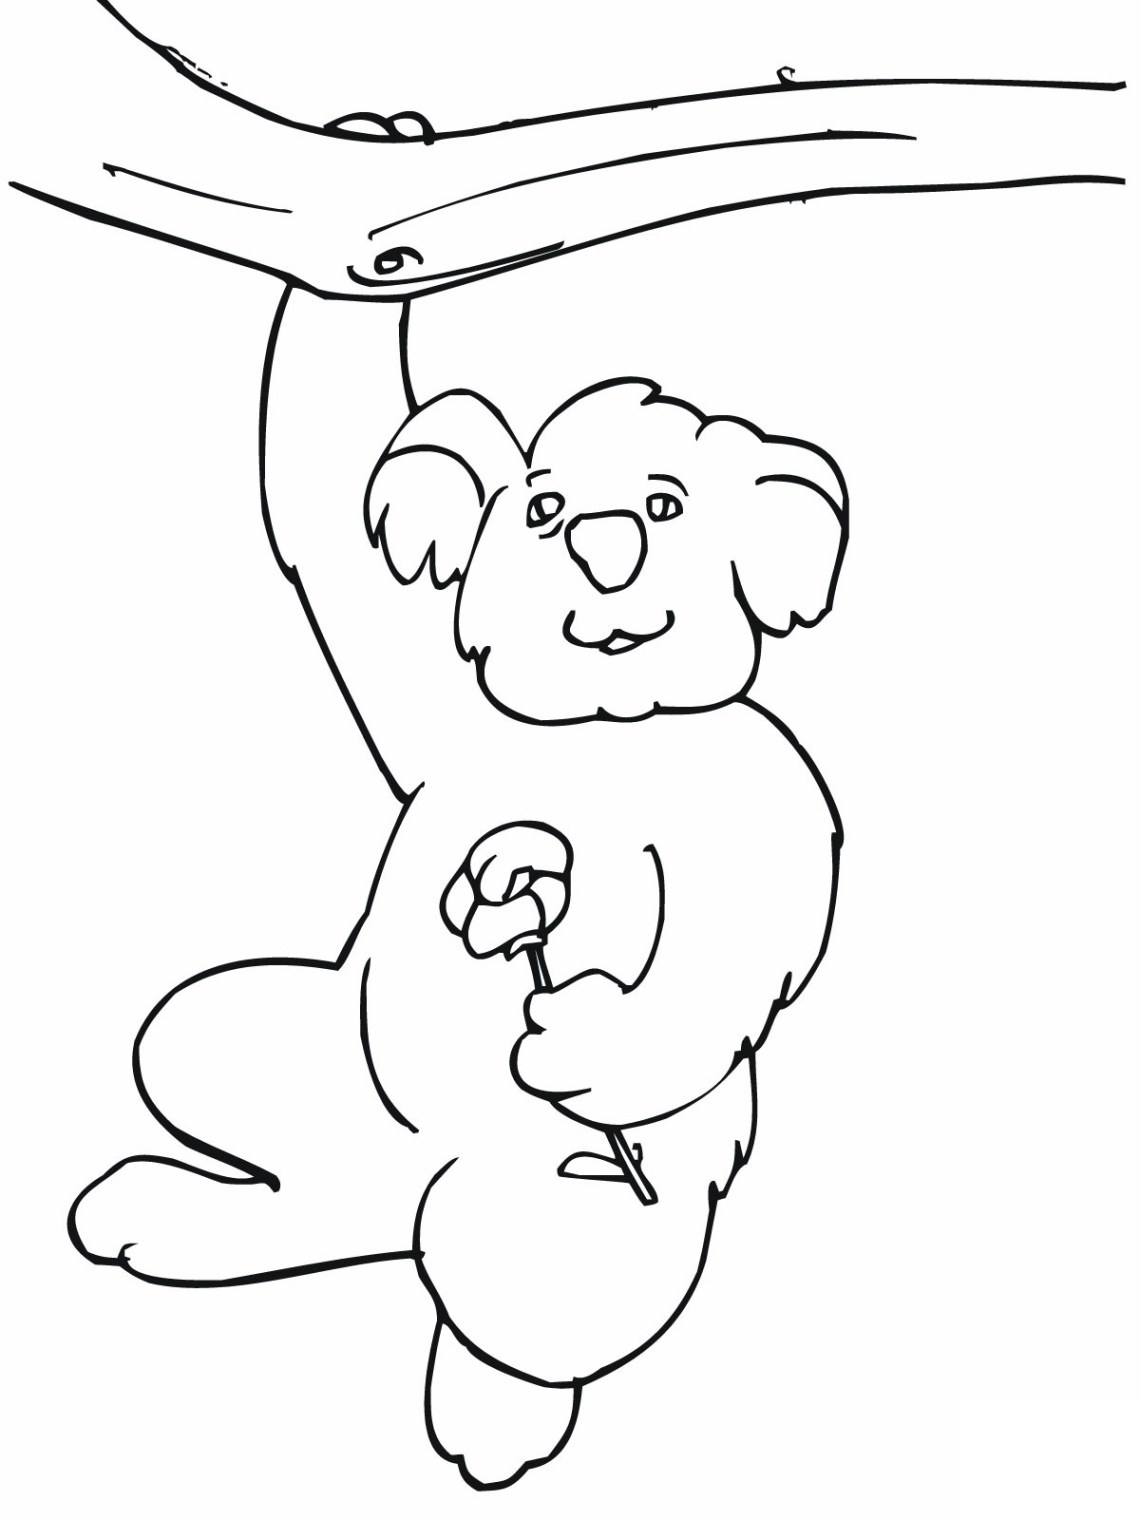 Free Printable Koala Coloring Pages For Kids | printable coloring pages funny